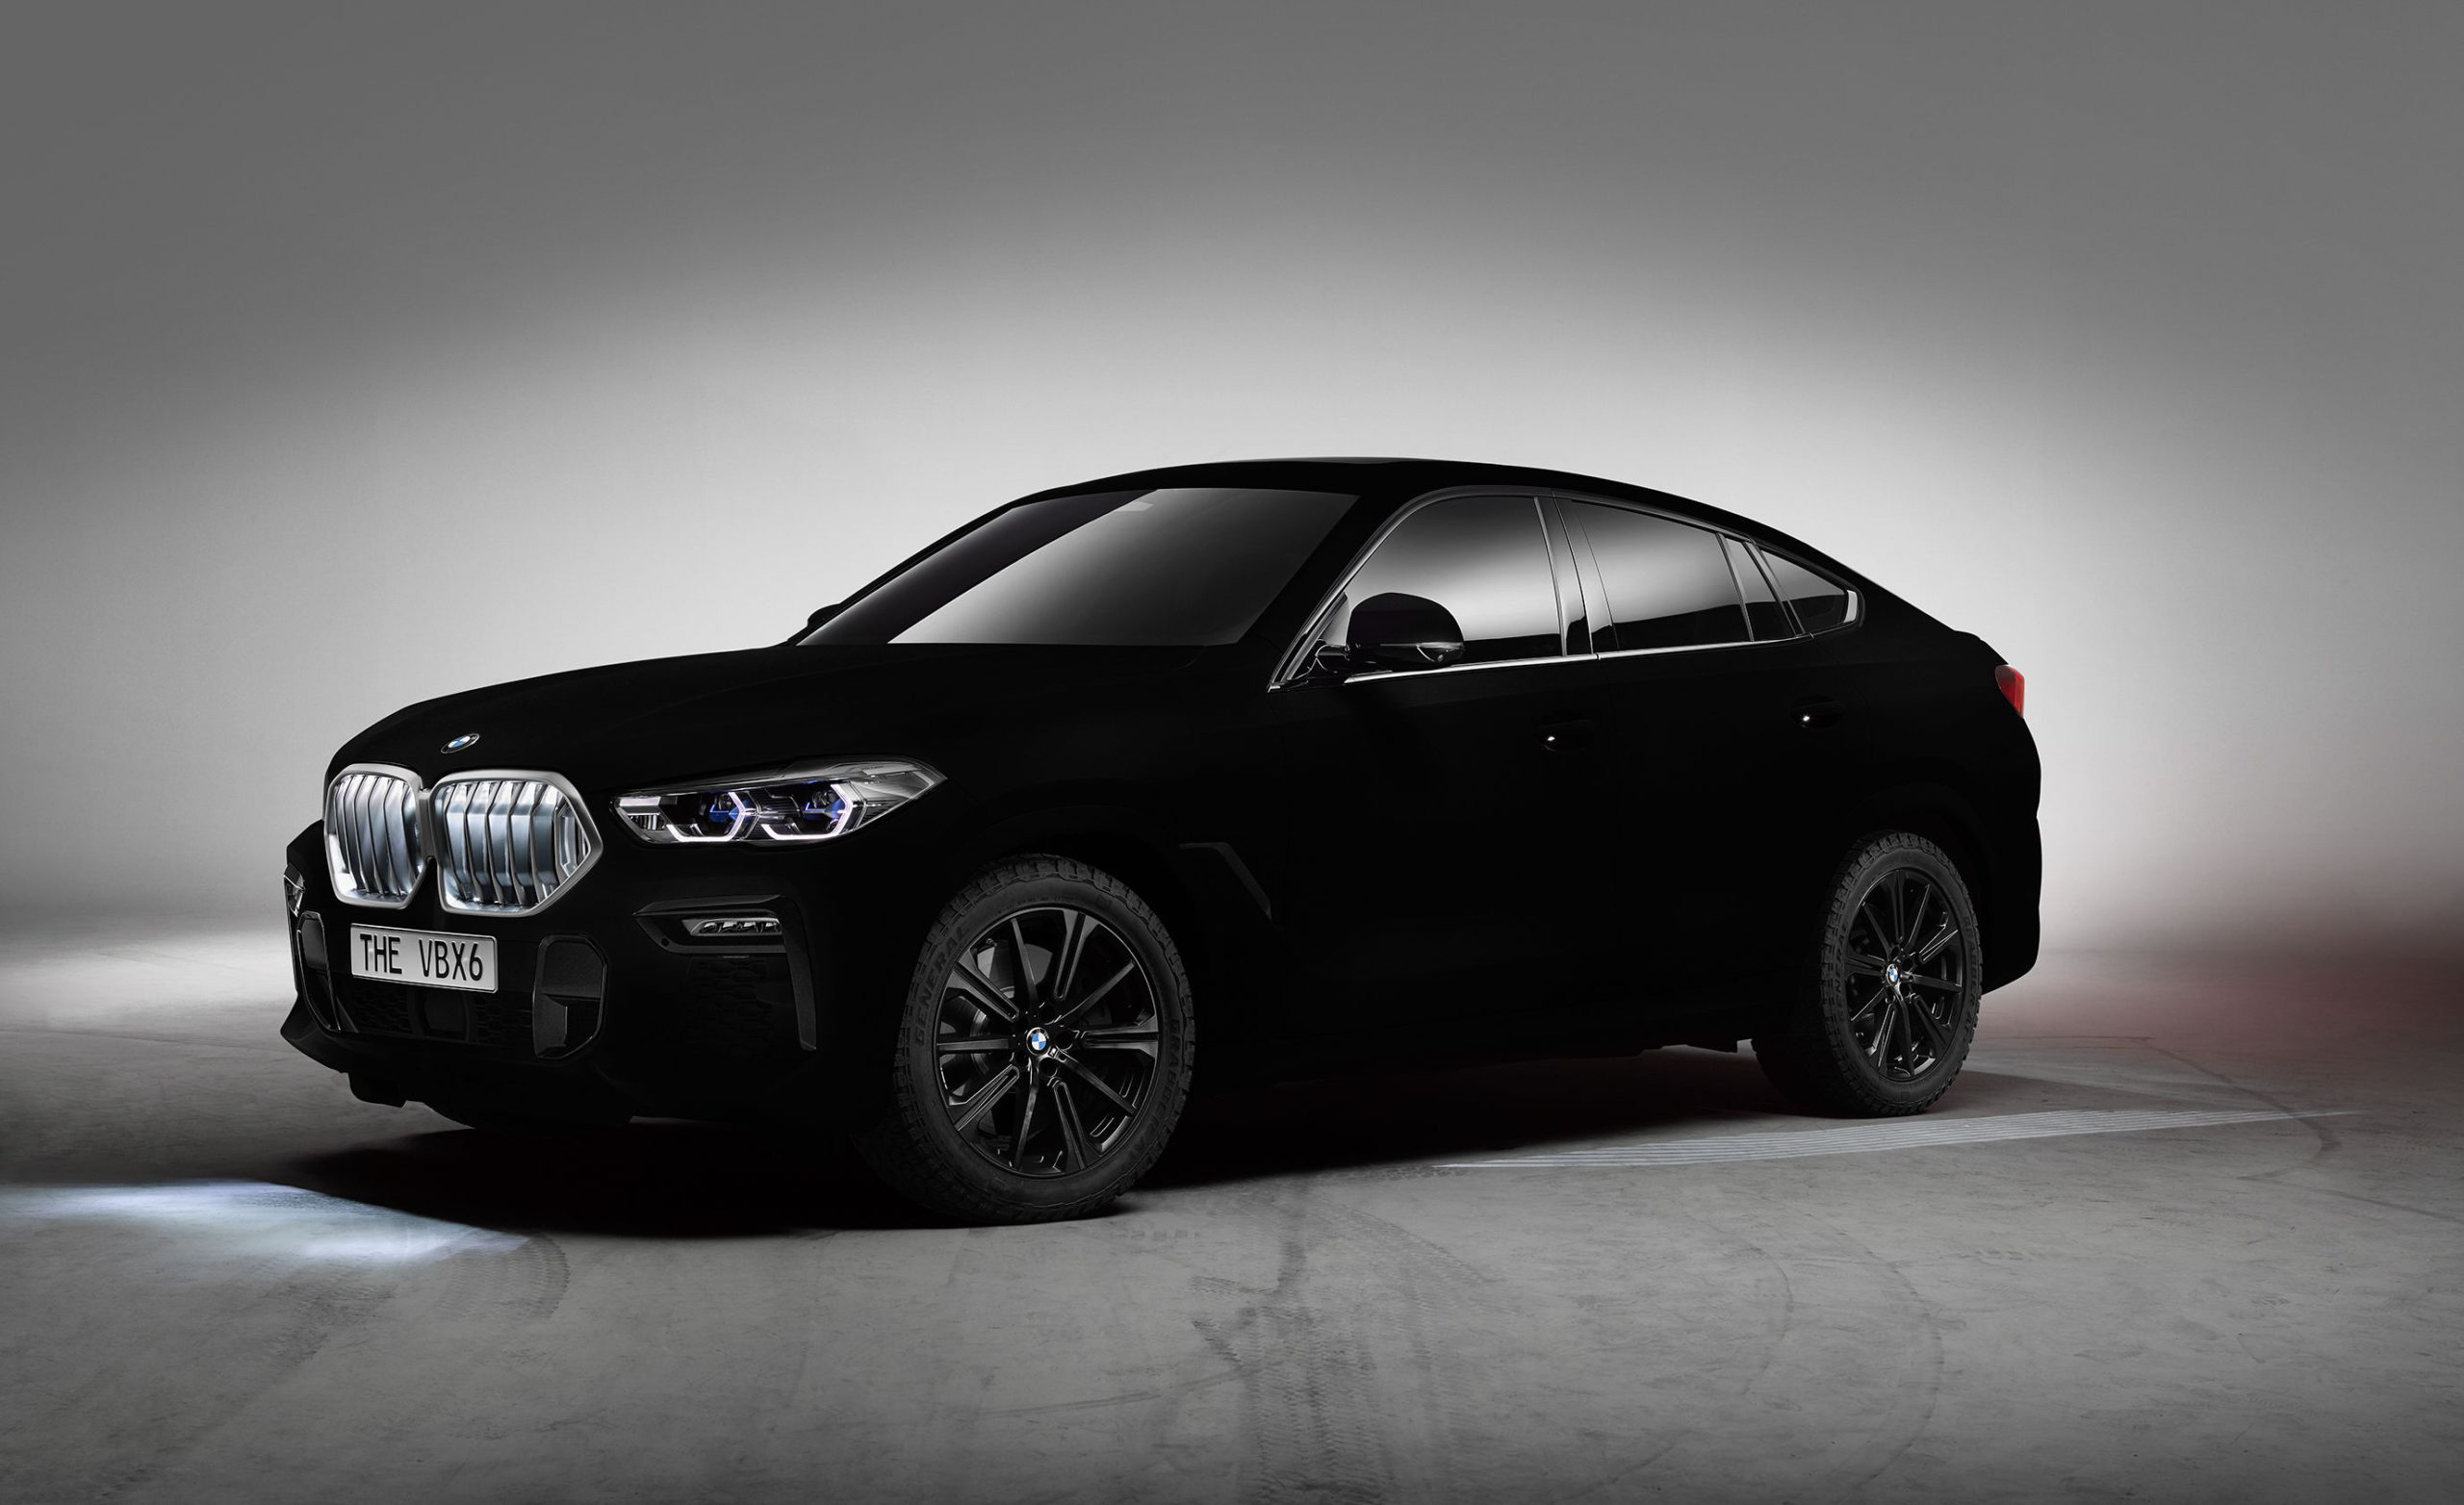 BMW X6 Gets a Blackest of Black Treatment with Paint That ...